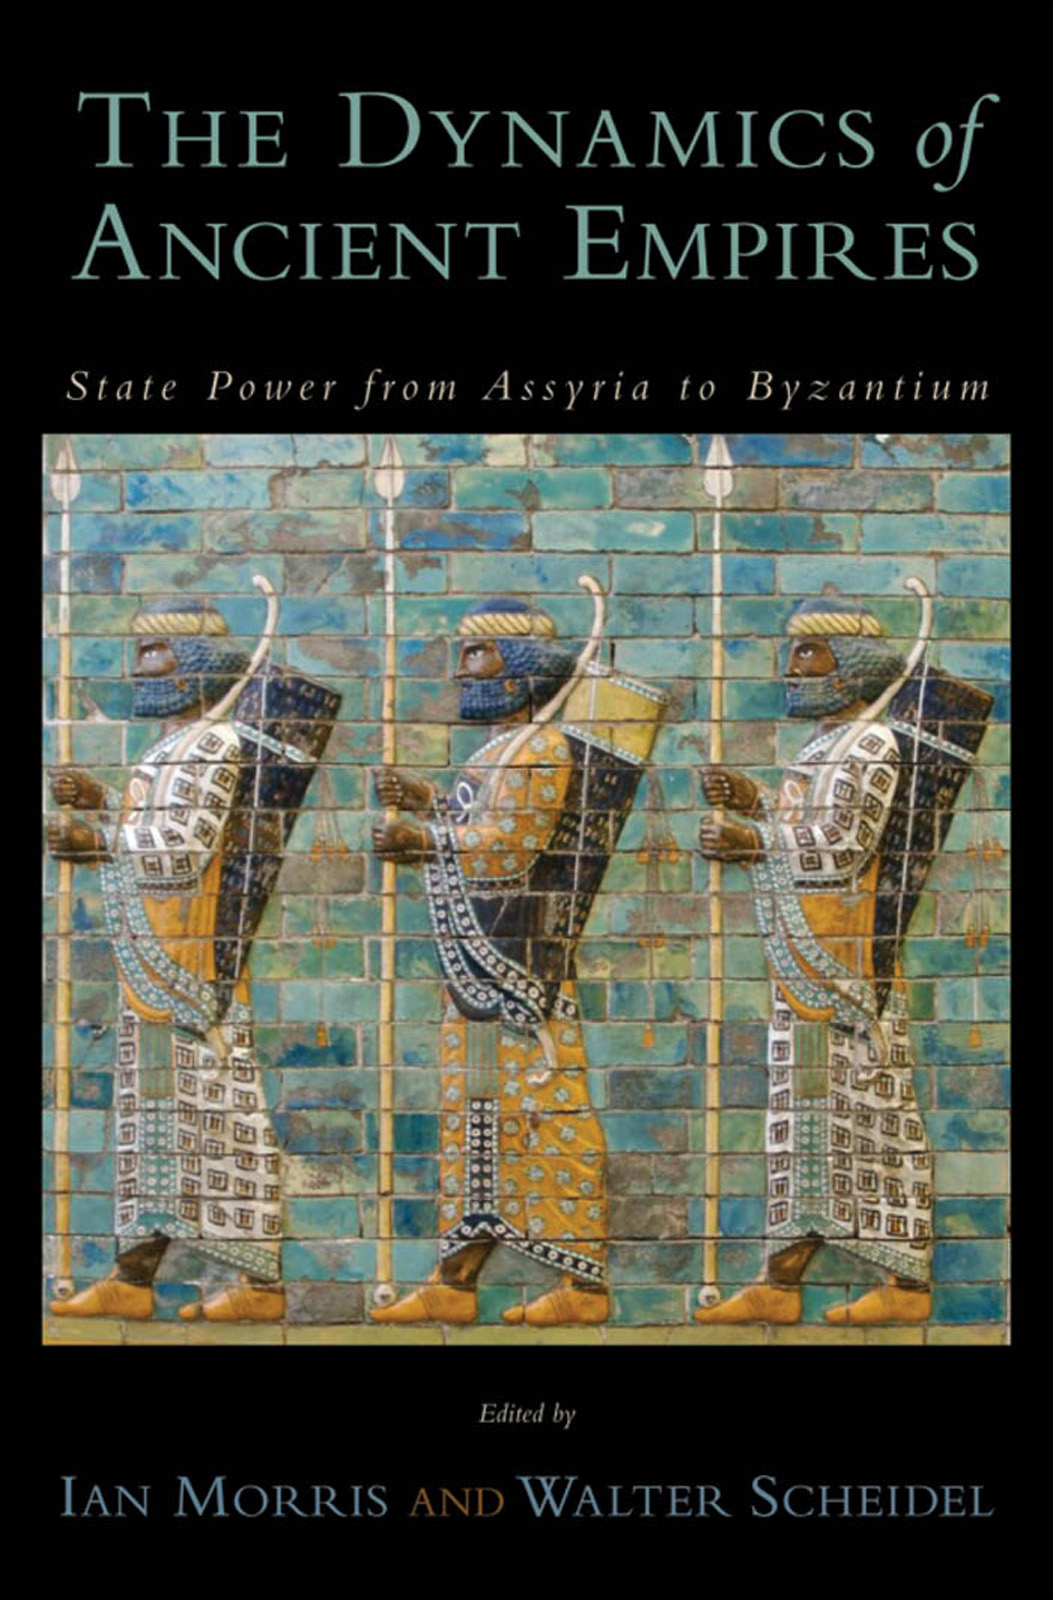 The Dynamics of Ancient Empires:State Power from Assyria to Byzantium